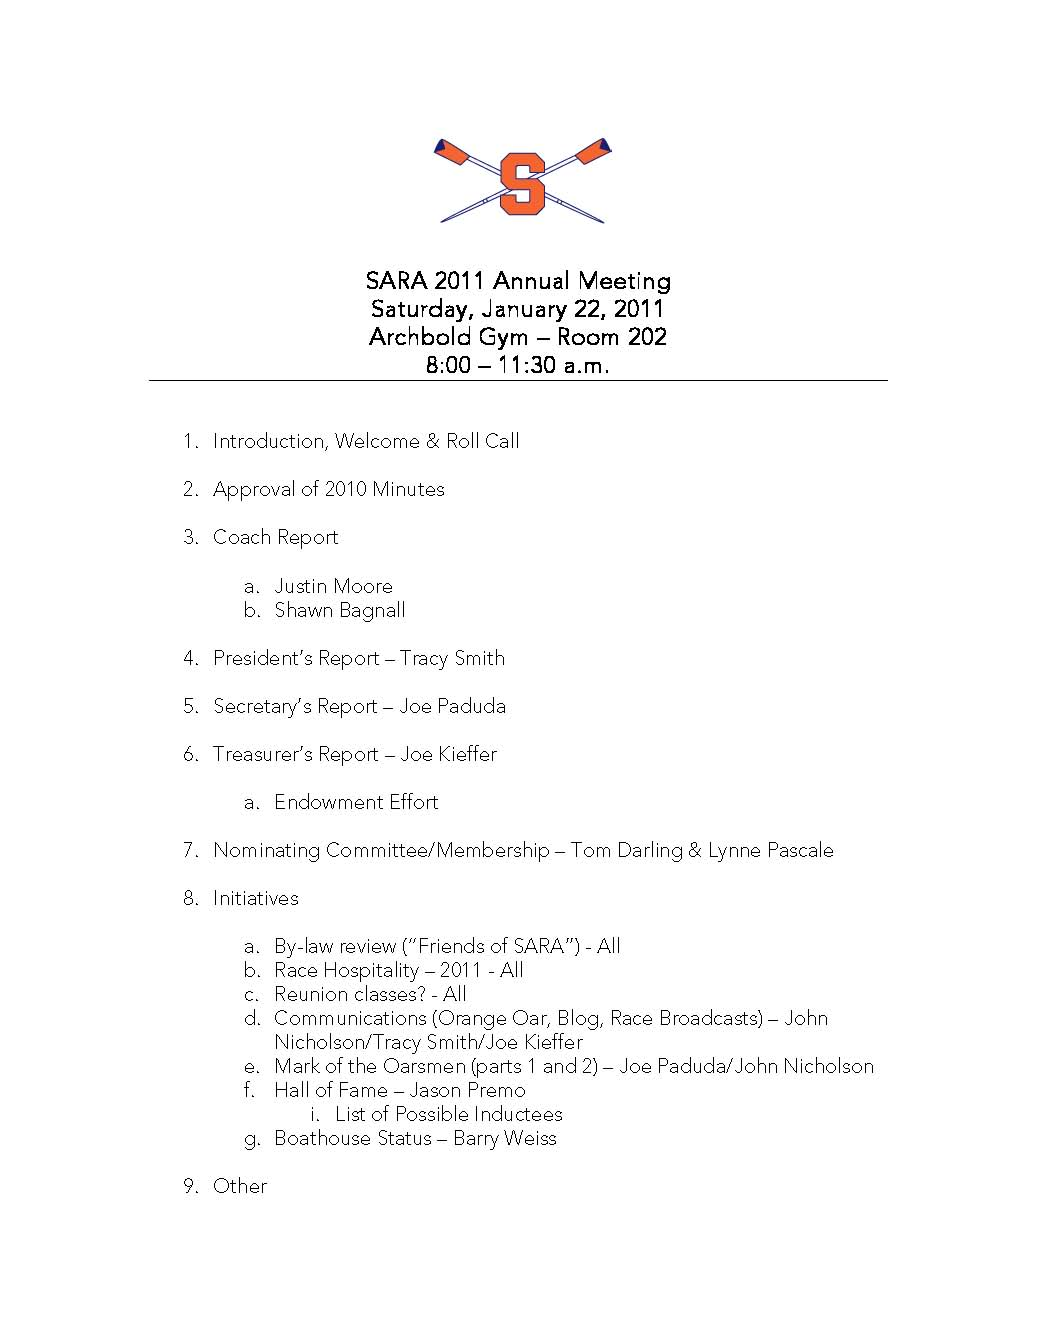 Sports Team Meeting Agenda 2011 sara annual meeting